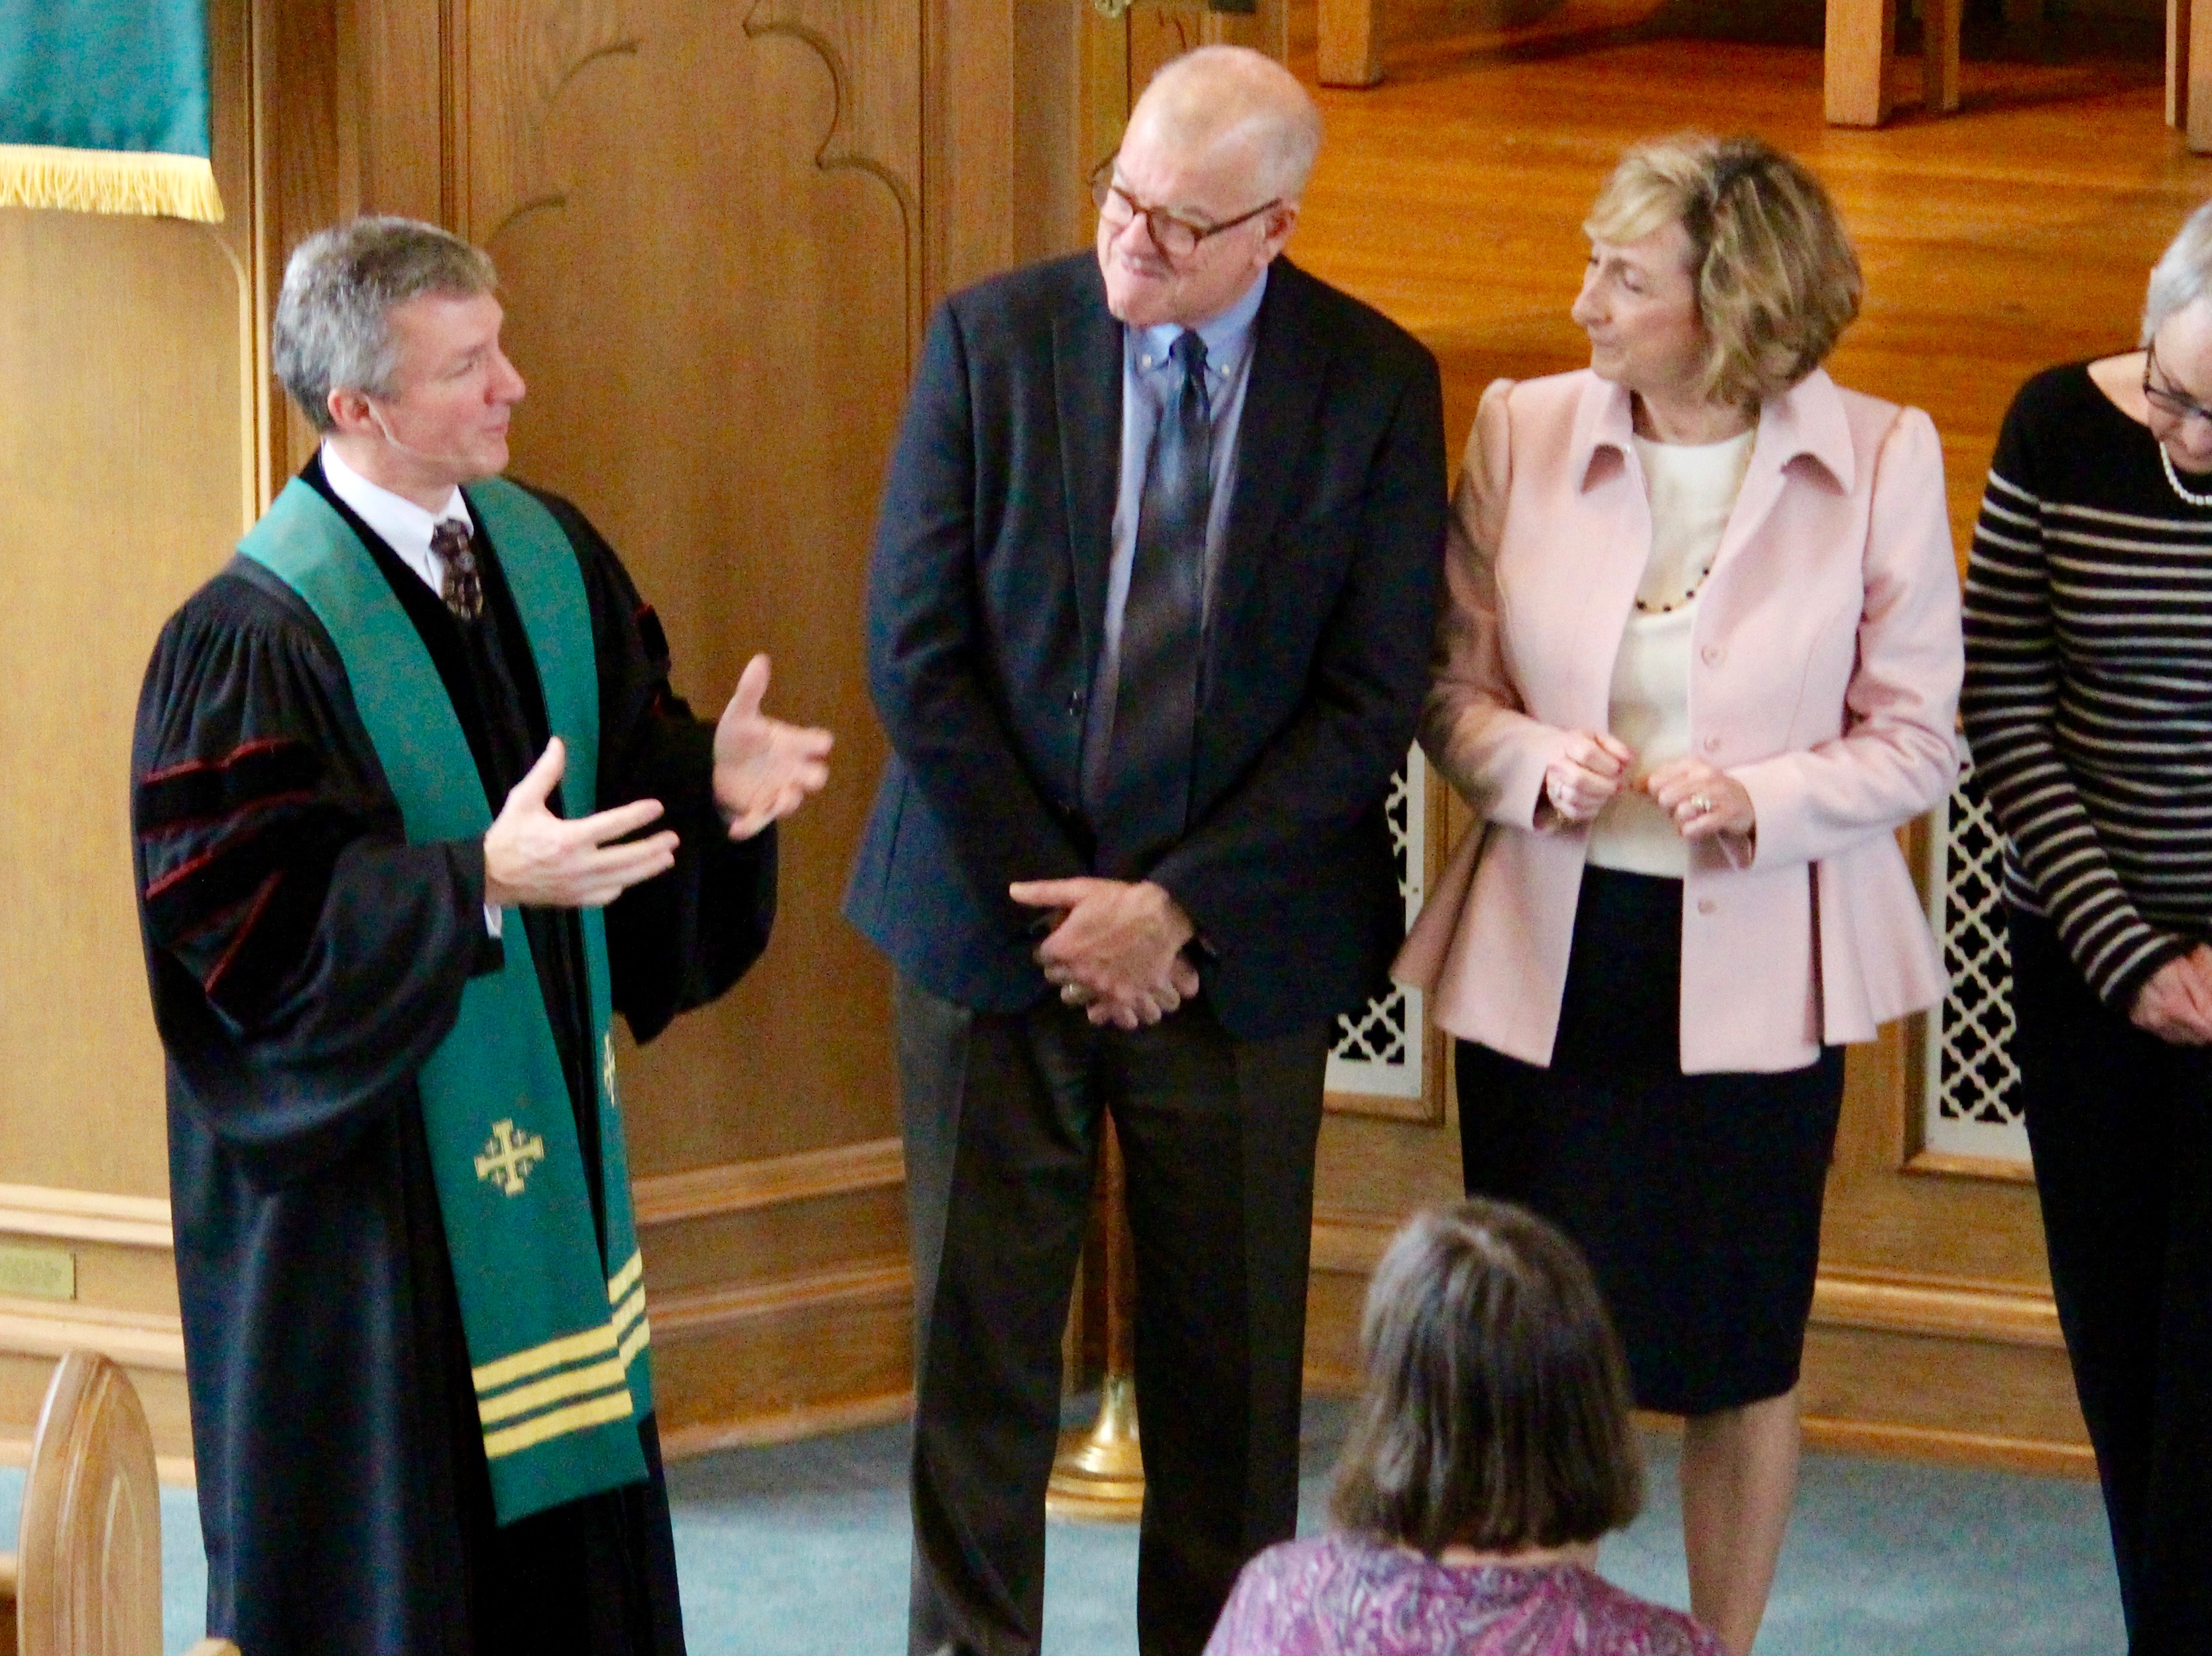 Rev. Speed Gives a Charge to Elders